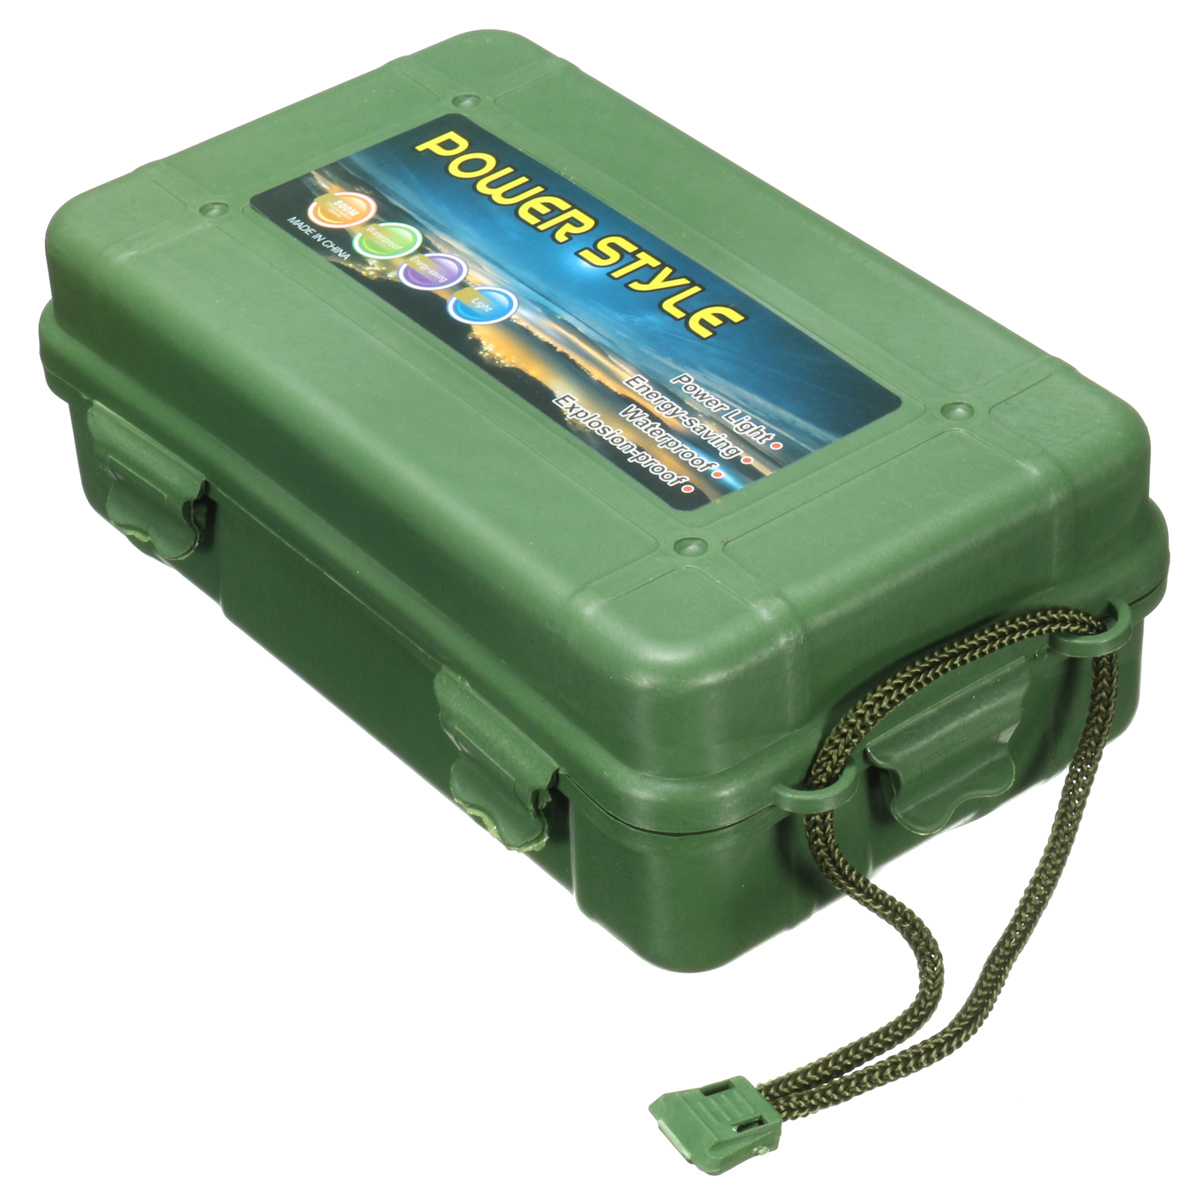 Jiguoor 202x121x65mm Outdoor Anti Fall Green Plastic Storage Box For Flashlight Light Torch Lamp Battery Charger Case Tools c1cy plastic hanging storage box green